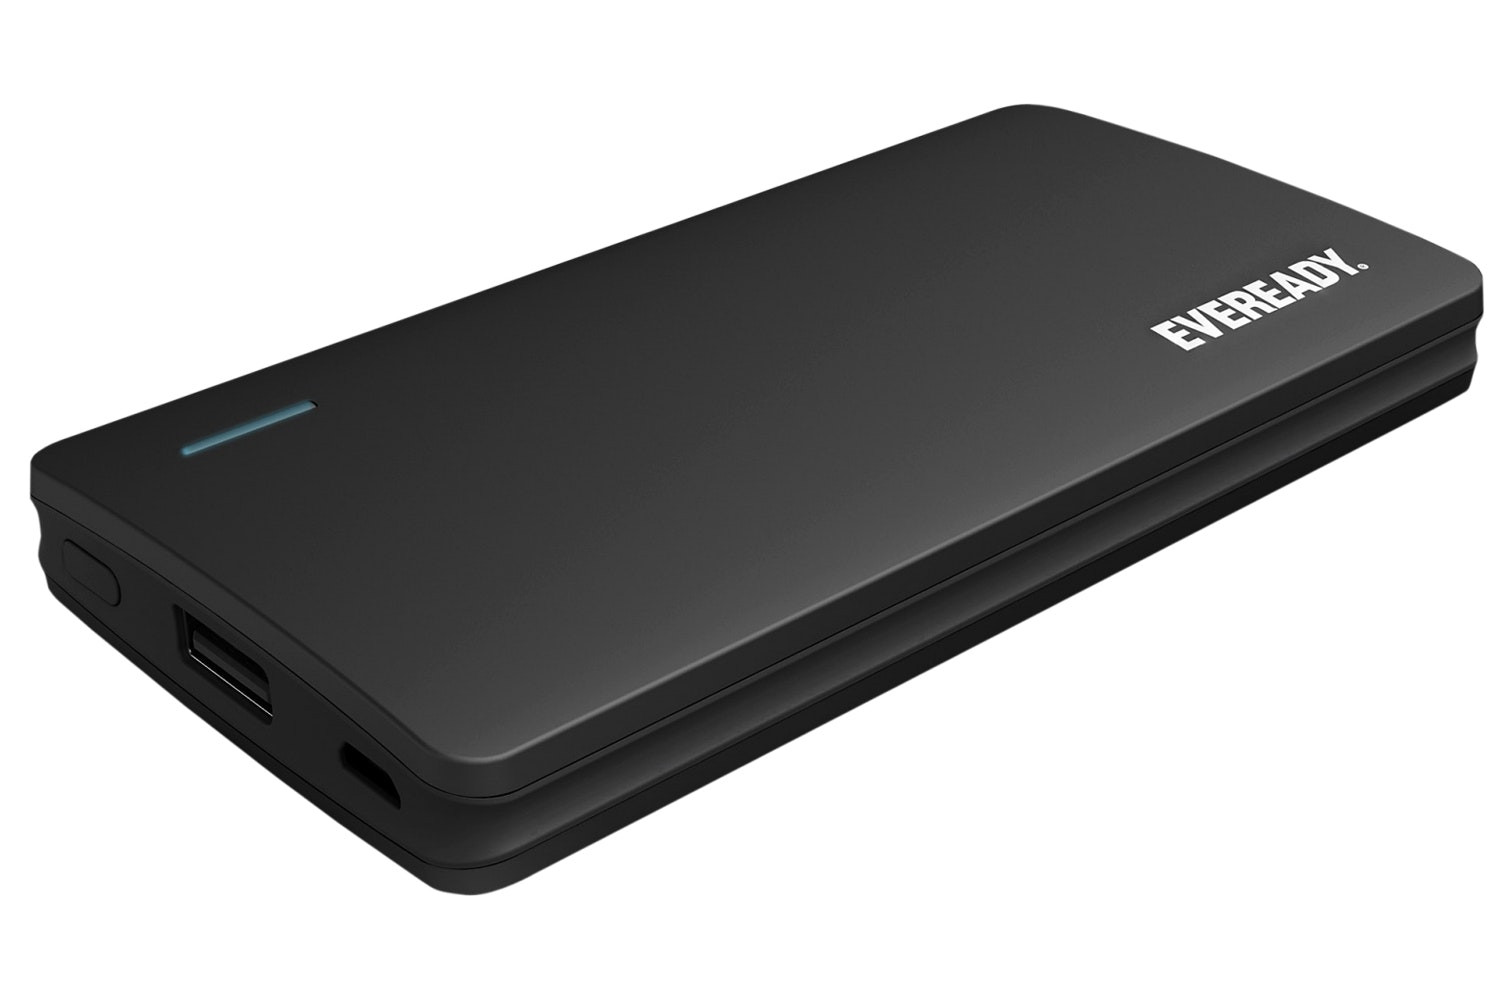 Eveready 5000mAh Portable Power Bank